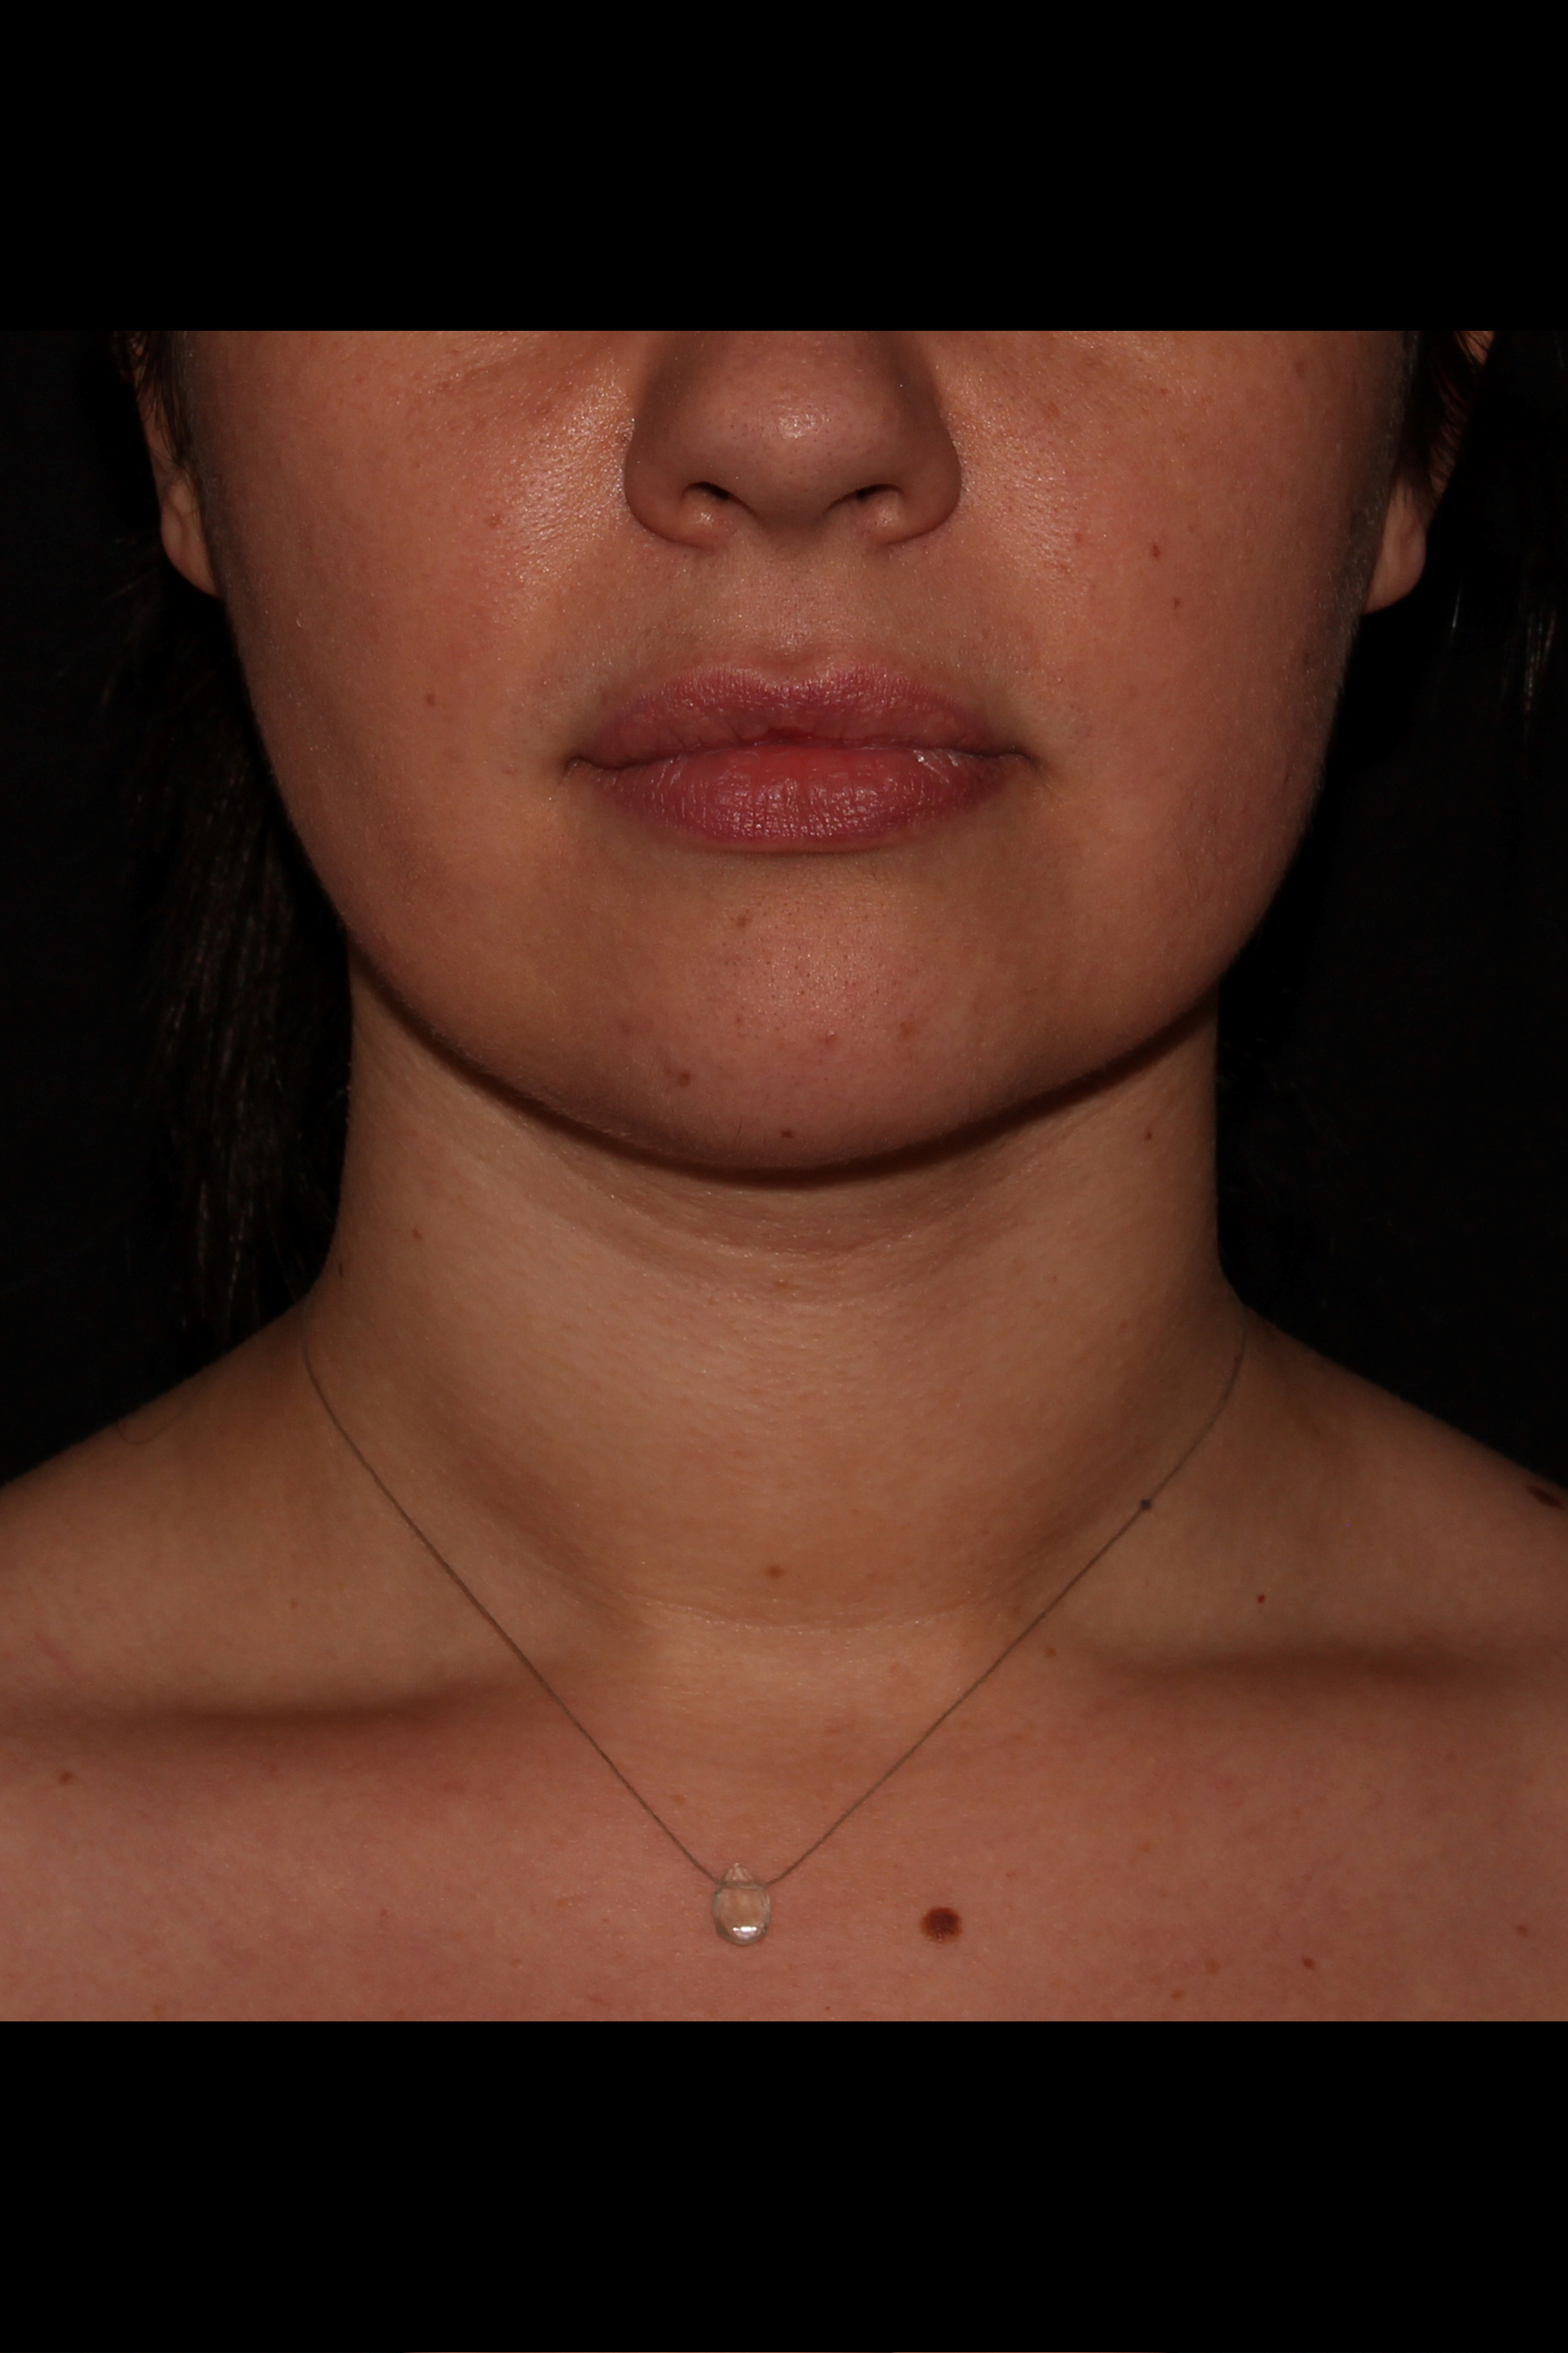 After Neck Liposuction - Neck aka Chin liposuction & Buccal Fat Pad Removal